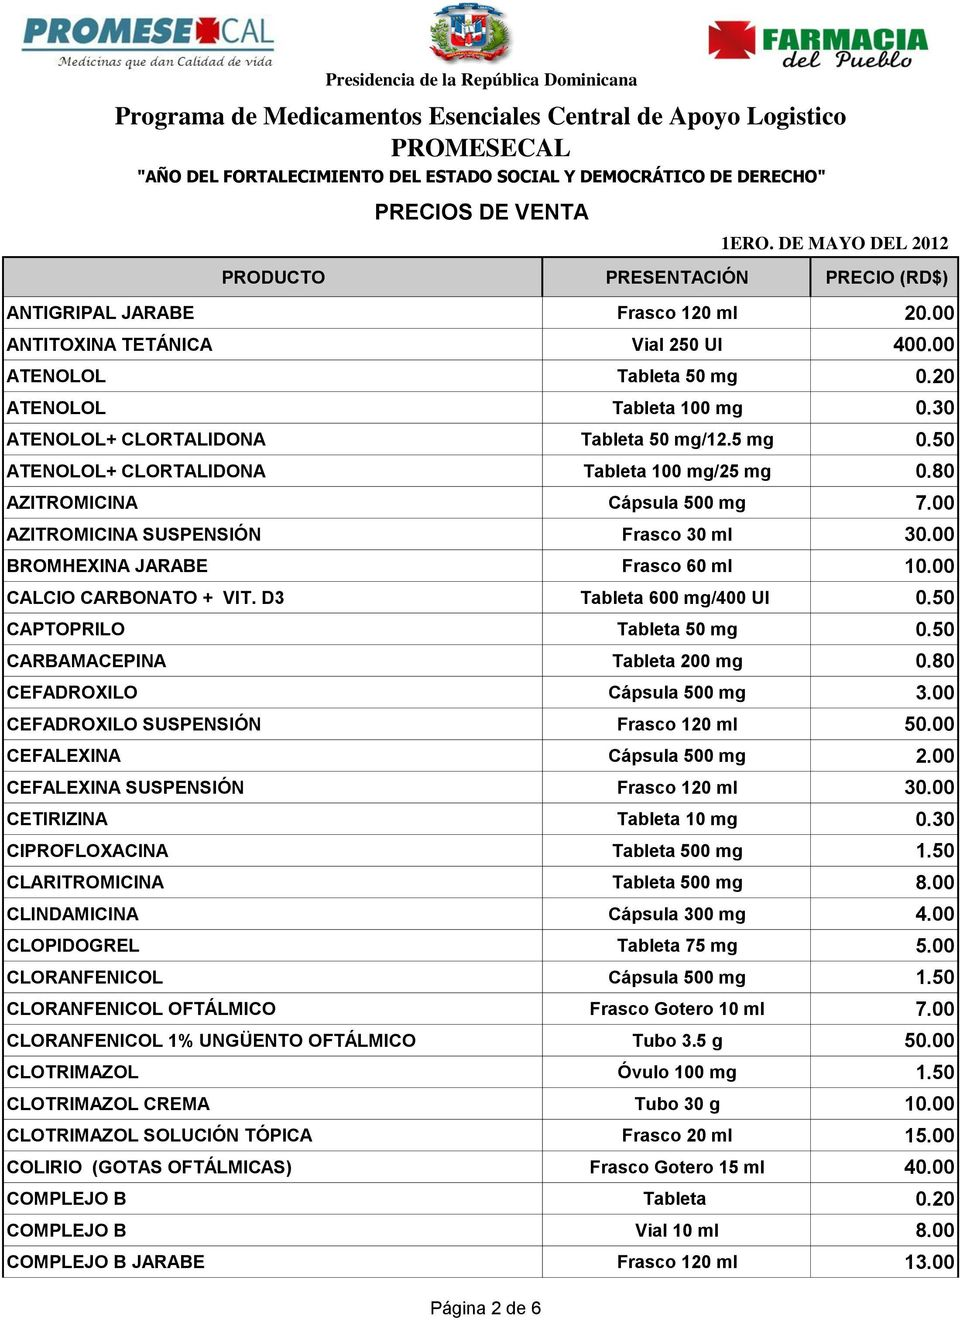 D3 Tableta 600 mg/400 UI 0.50 CAPTOPRILO Tableta 50 mg 0.50 CARBAMACEPINA Tableta 200 mg 0.80 CEFADROXILO Cápsula 500 mg 3.00 CEFADROXILO SUSPENSIÓN Frasco 120 ml 50.00 CEFALEXINA Cápsula 500 mg 2.